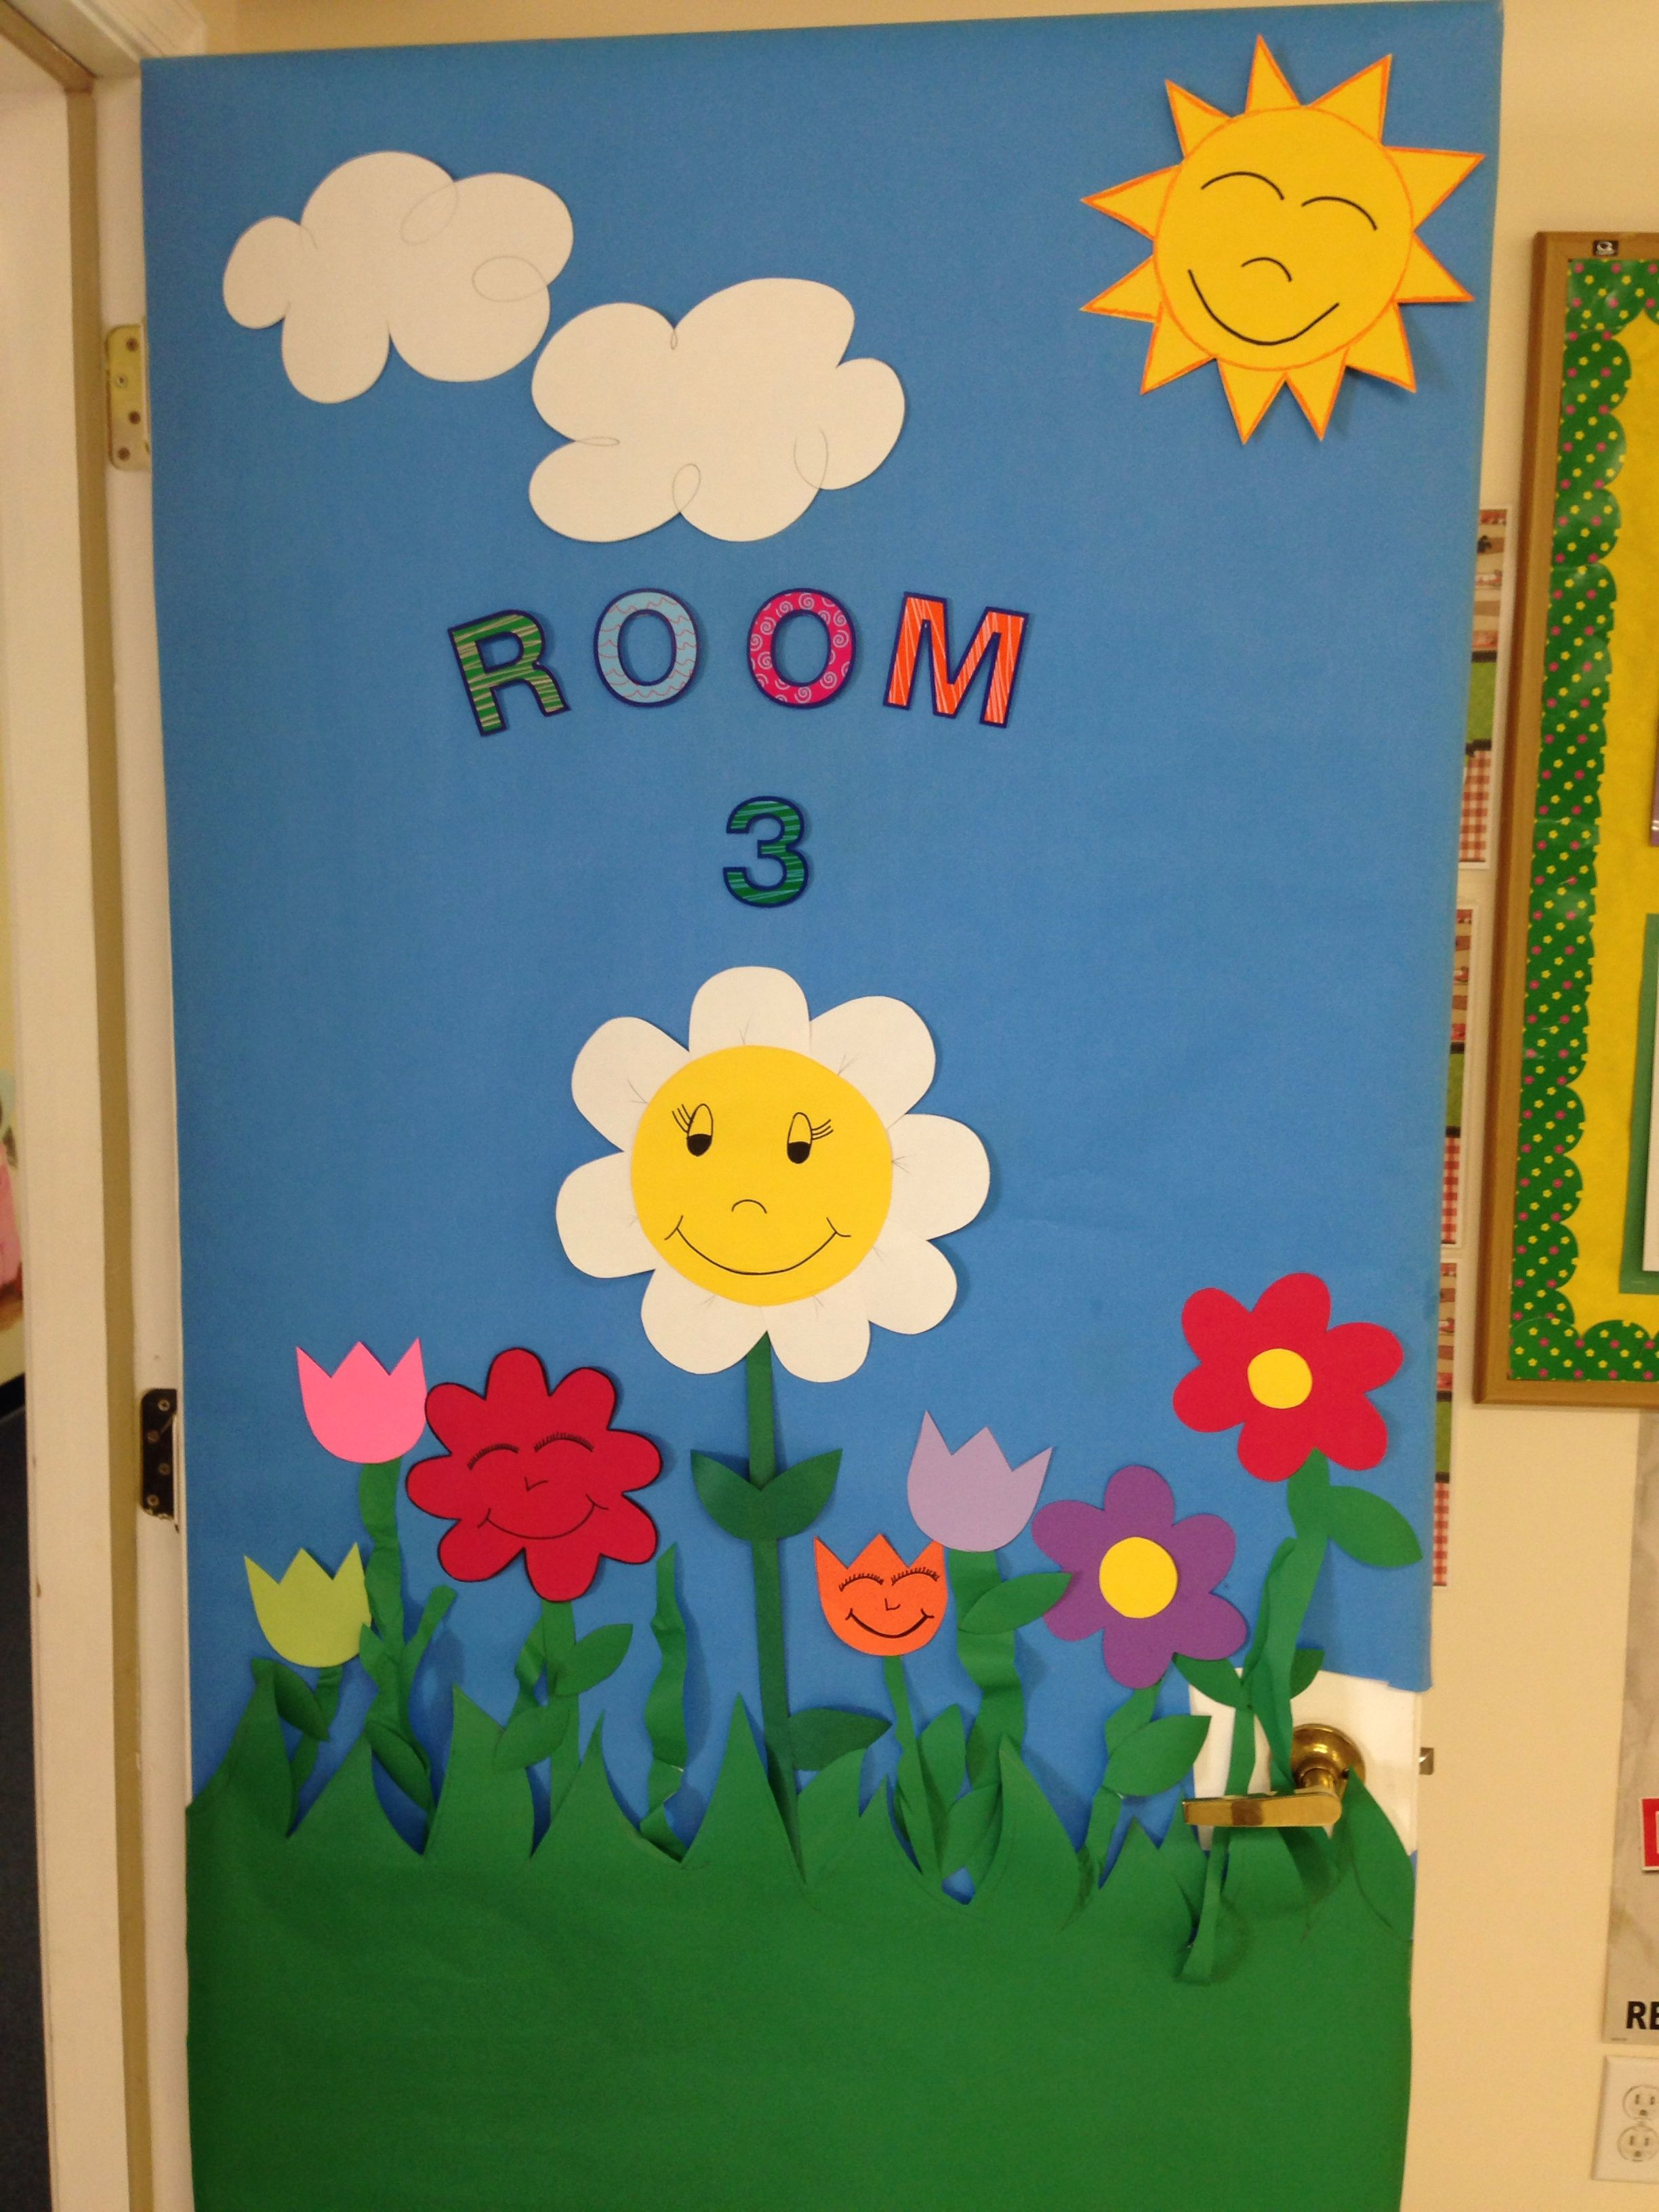 Decor Room · Summer door decoration : preschool room decorating ideas - www.pureclipart.com